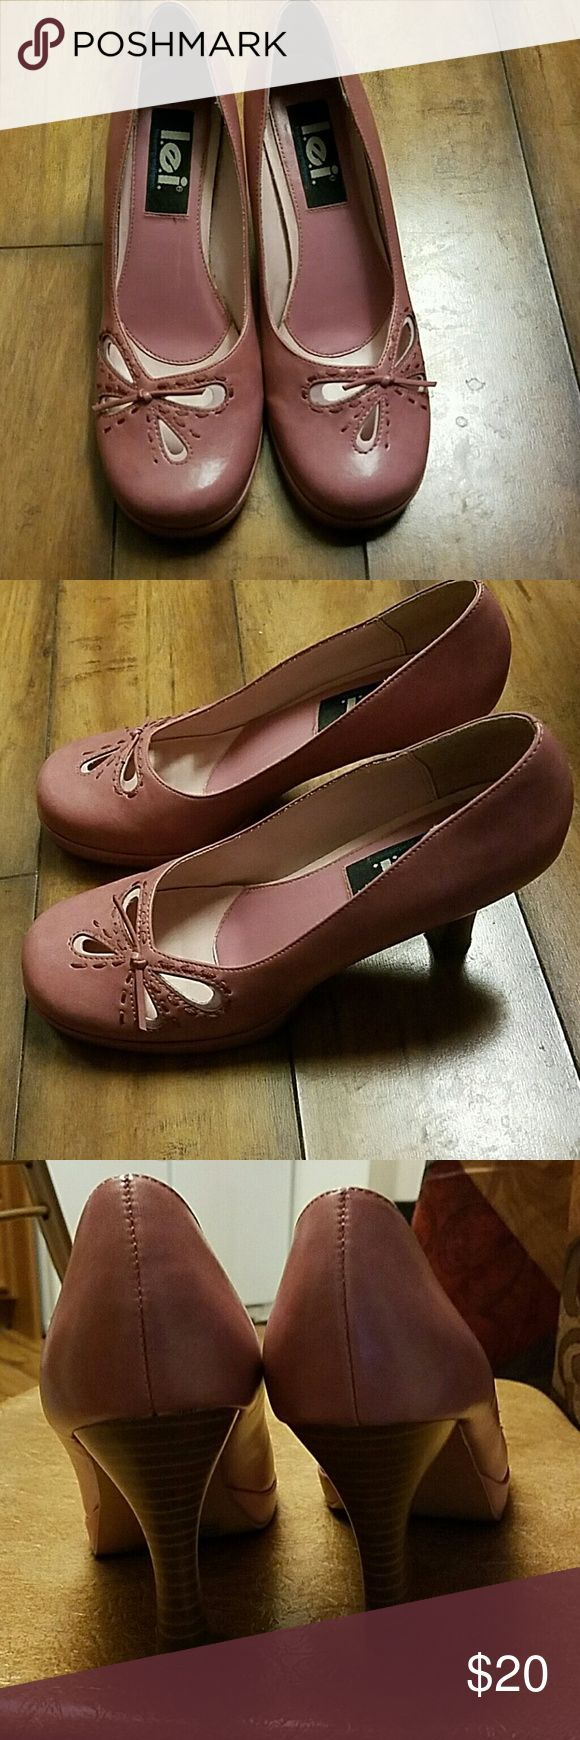 Ladies Shoes size 8.5 Ladies cute rose colored shoes... Great shape, size 8.5.. Additional pics available upon request. Shoes Heels